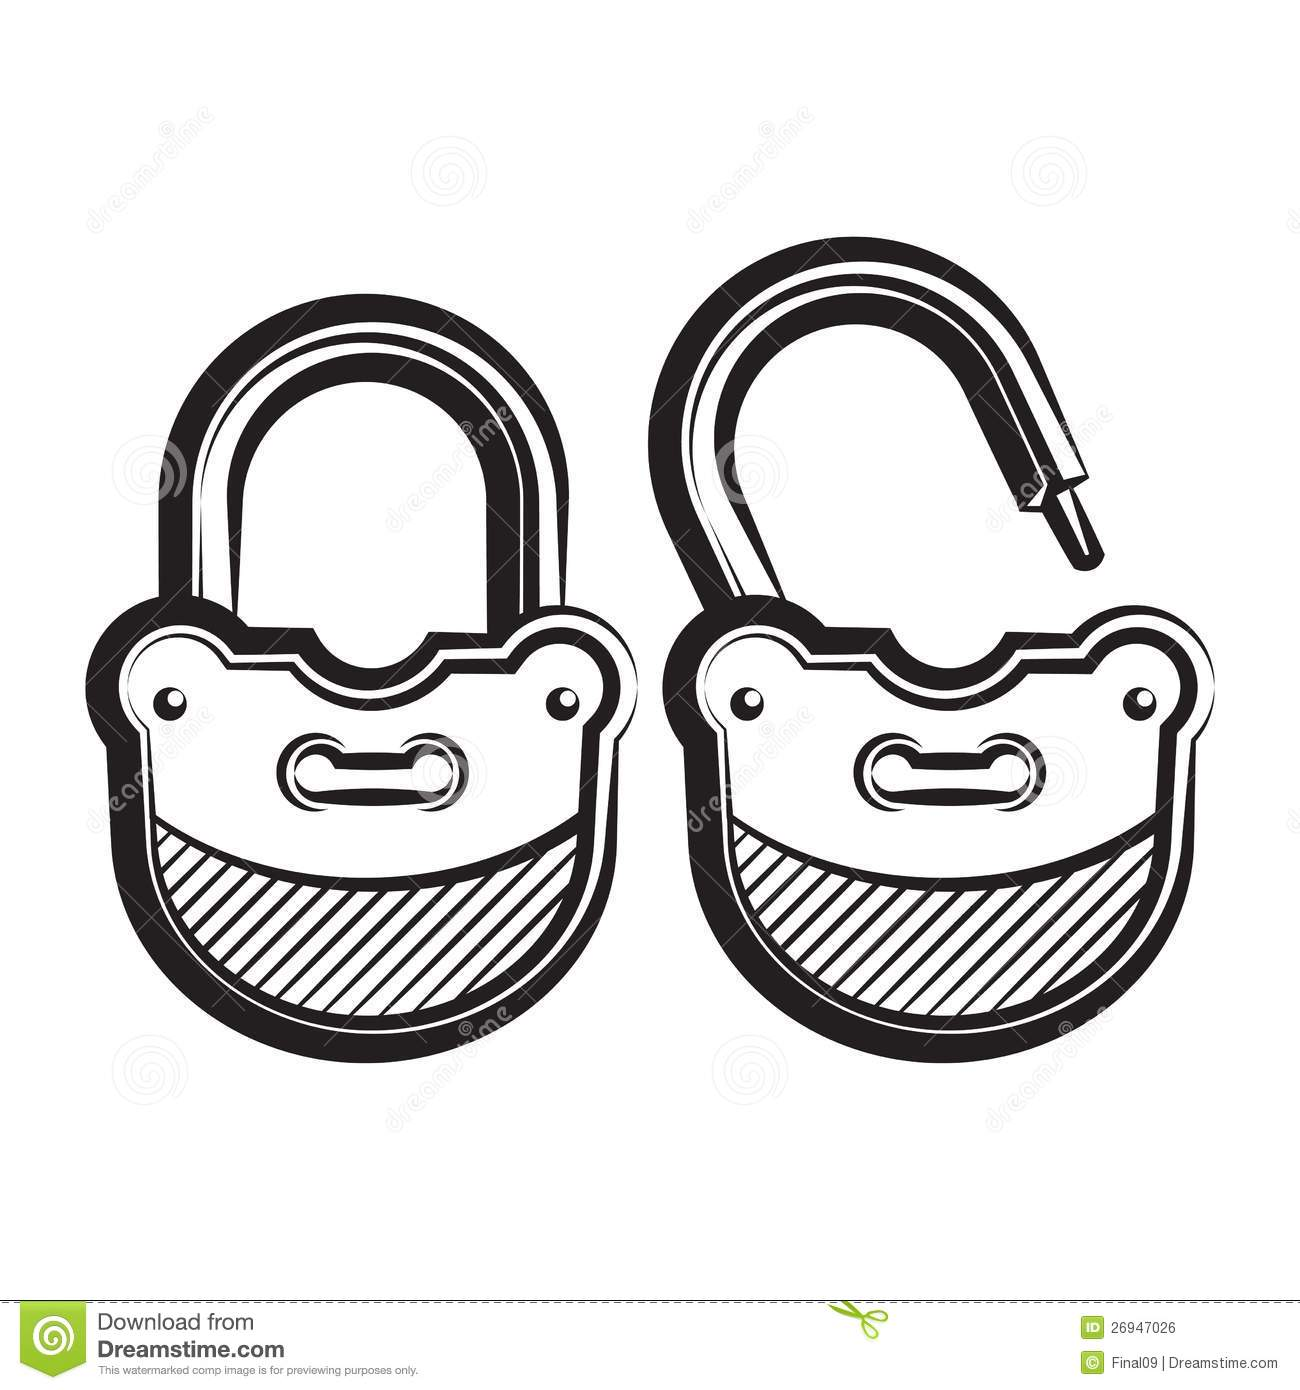 Lock Icon Black And White Vector Illustration Royalty